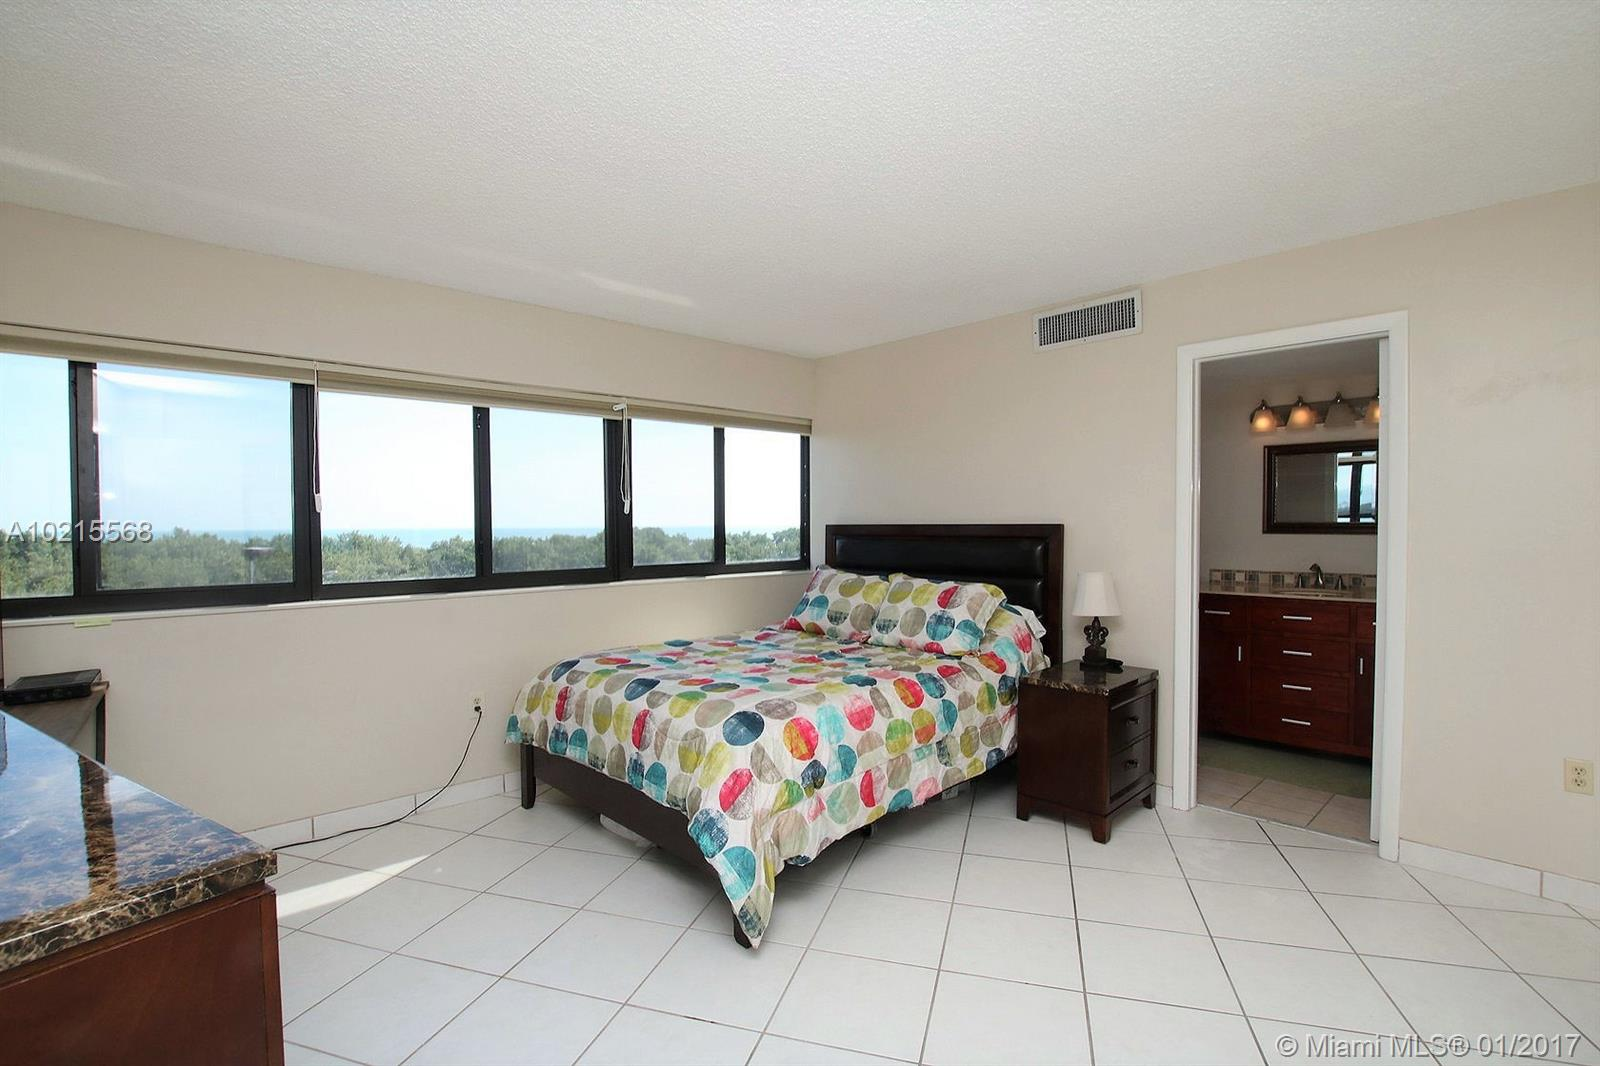 1530 Ocean bay dr-410 other-city---keys/islands/caribbean--fl-33037-a10215568-Pic17